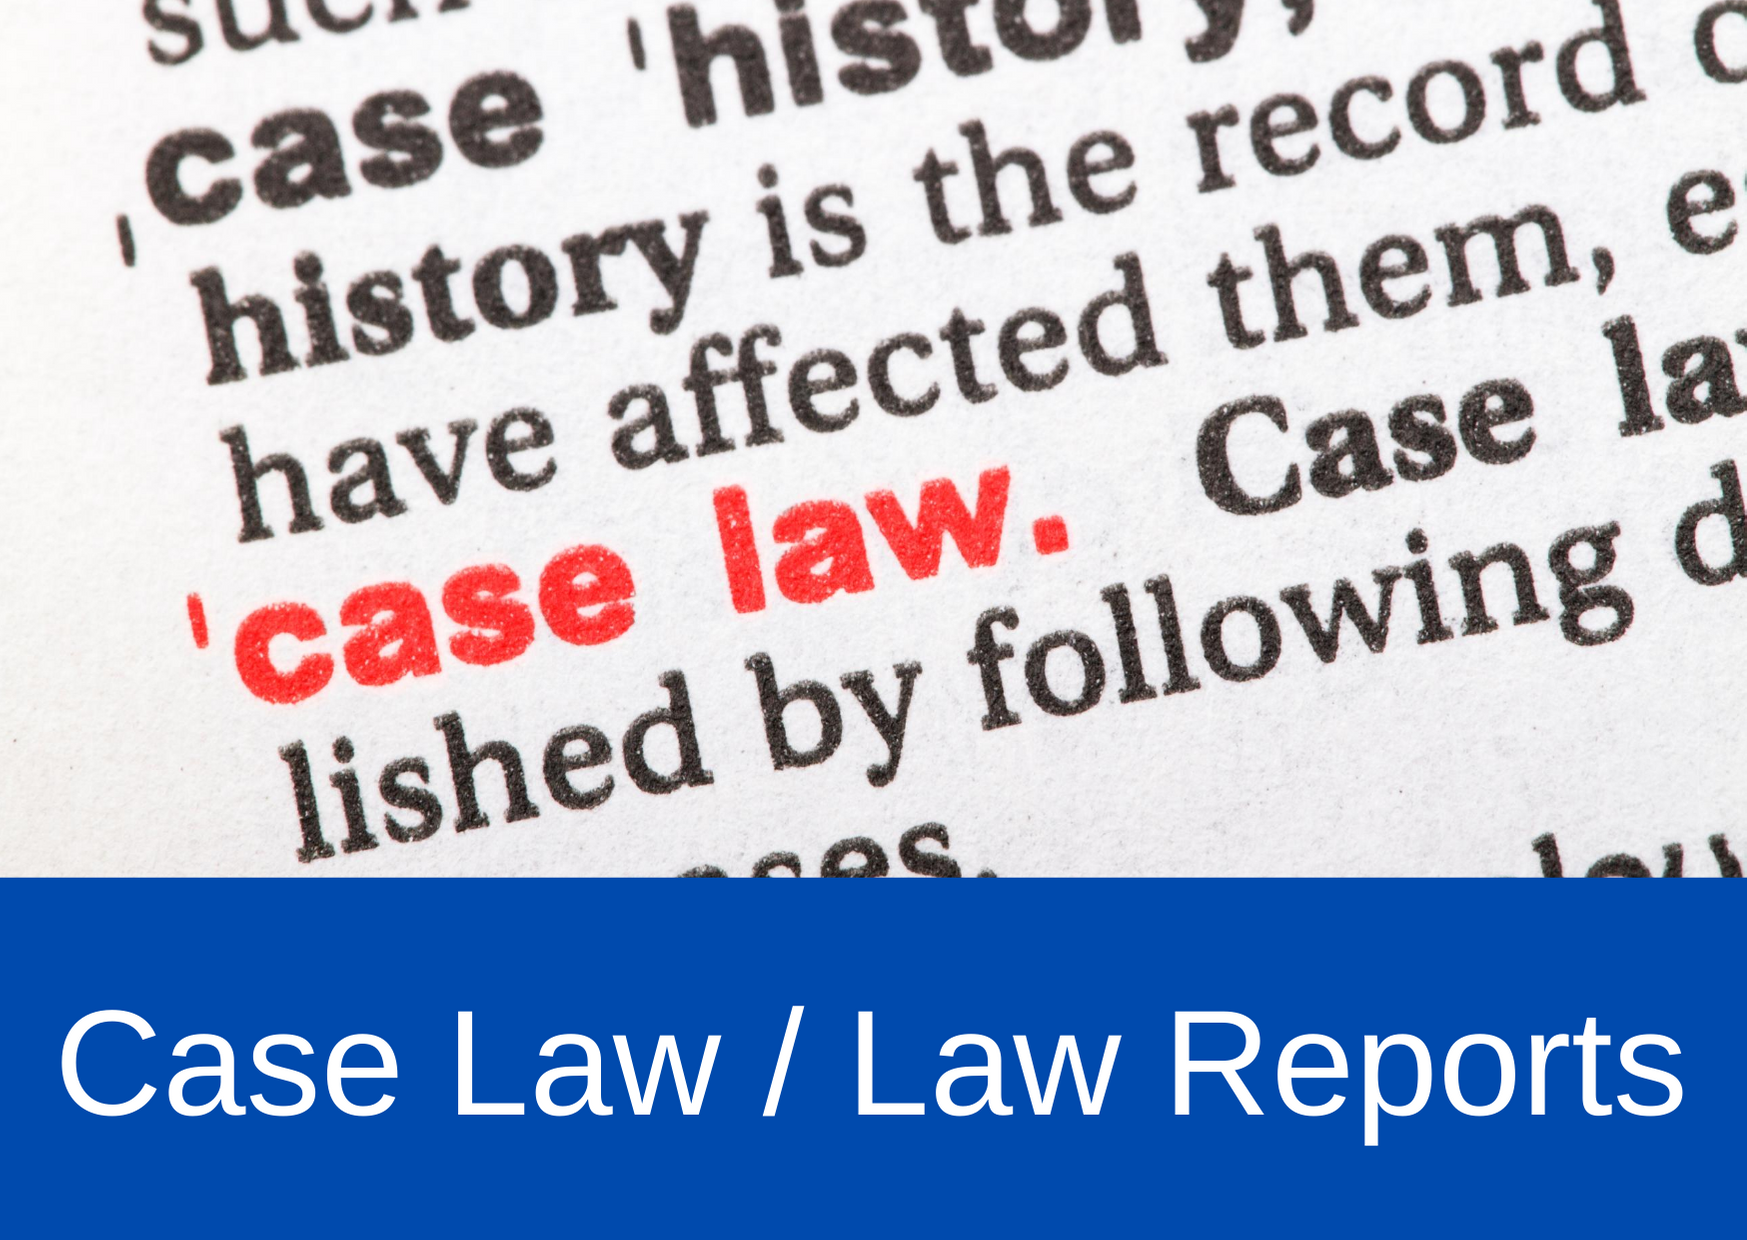 Law Cases / Law Reports